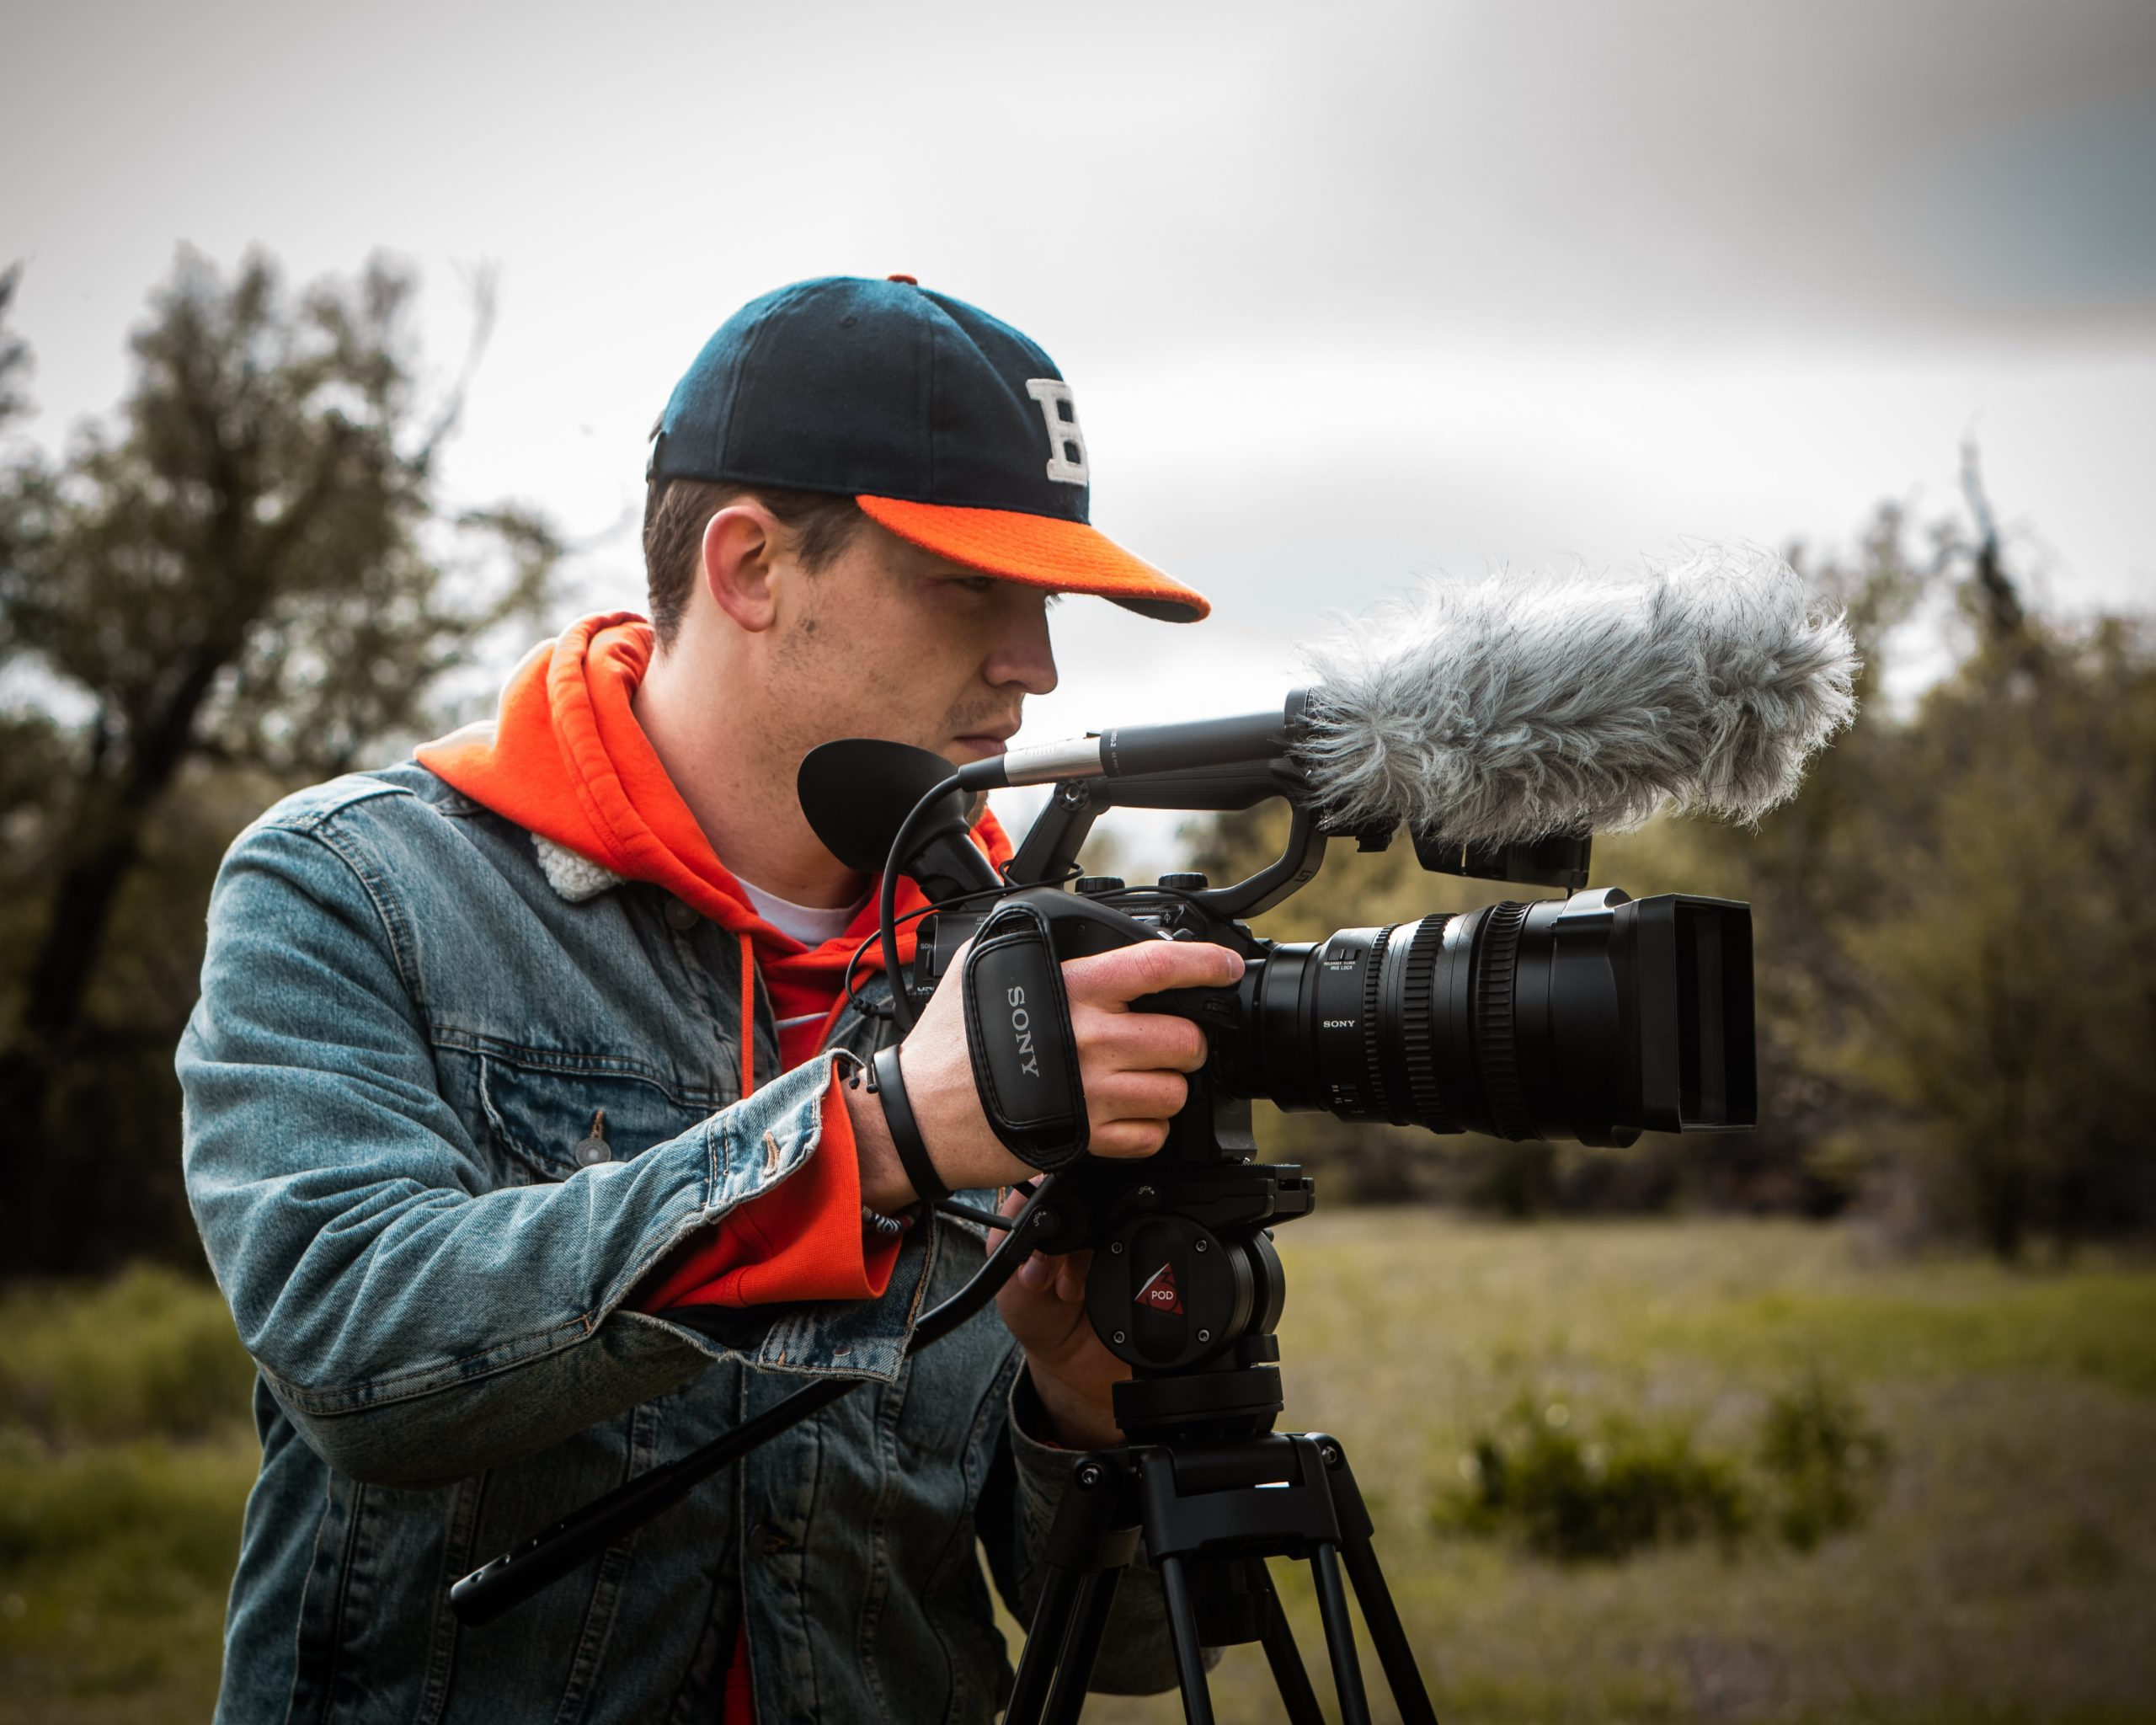 A freelance videographer making a video using his video camera